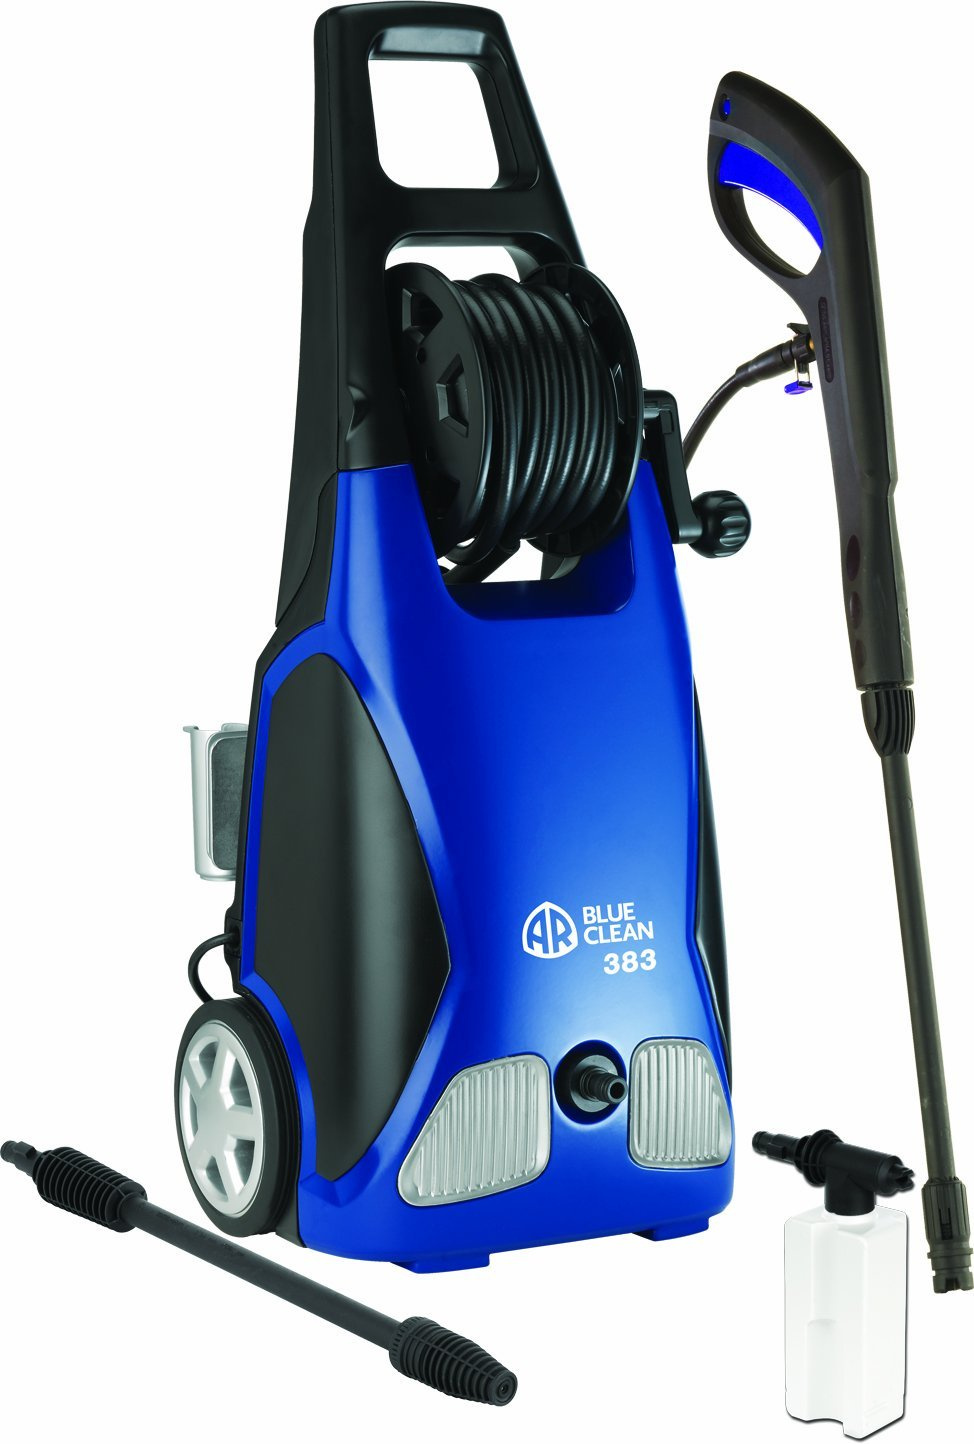 Review of AR Blue Clean AR383 1,900 PSI 1.5 GPM 14 Amp Electric Pressure Washer with Hose Reel